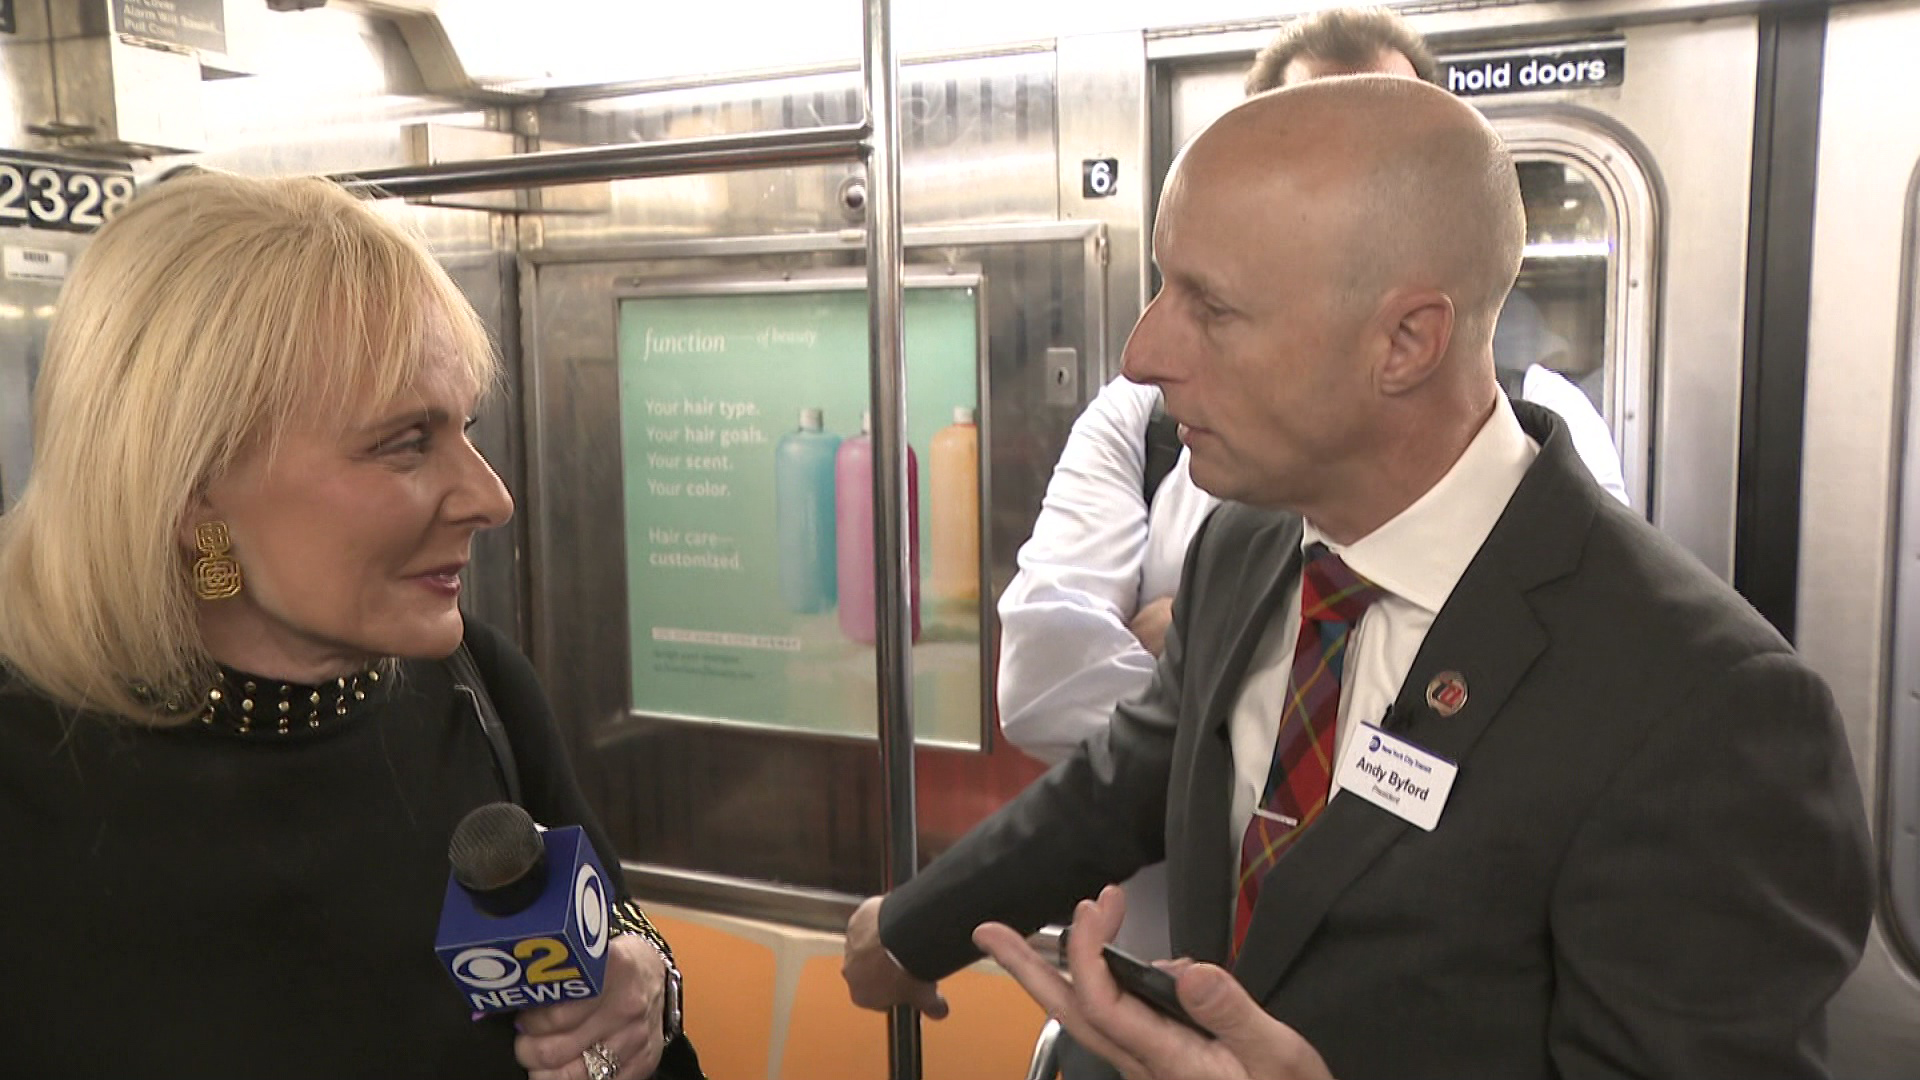 Byford Enjoyed 2 Successful Years With MTA, But Ultimately Grew Frustrated Over Clashes With Gov. Cuomo